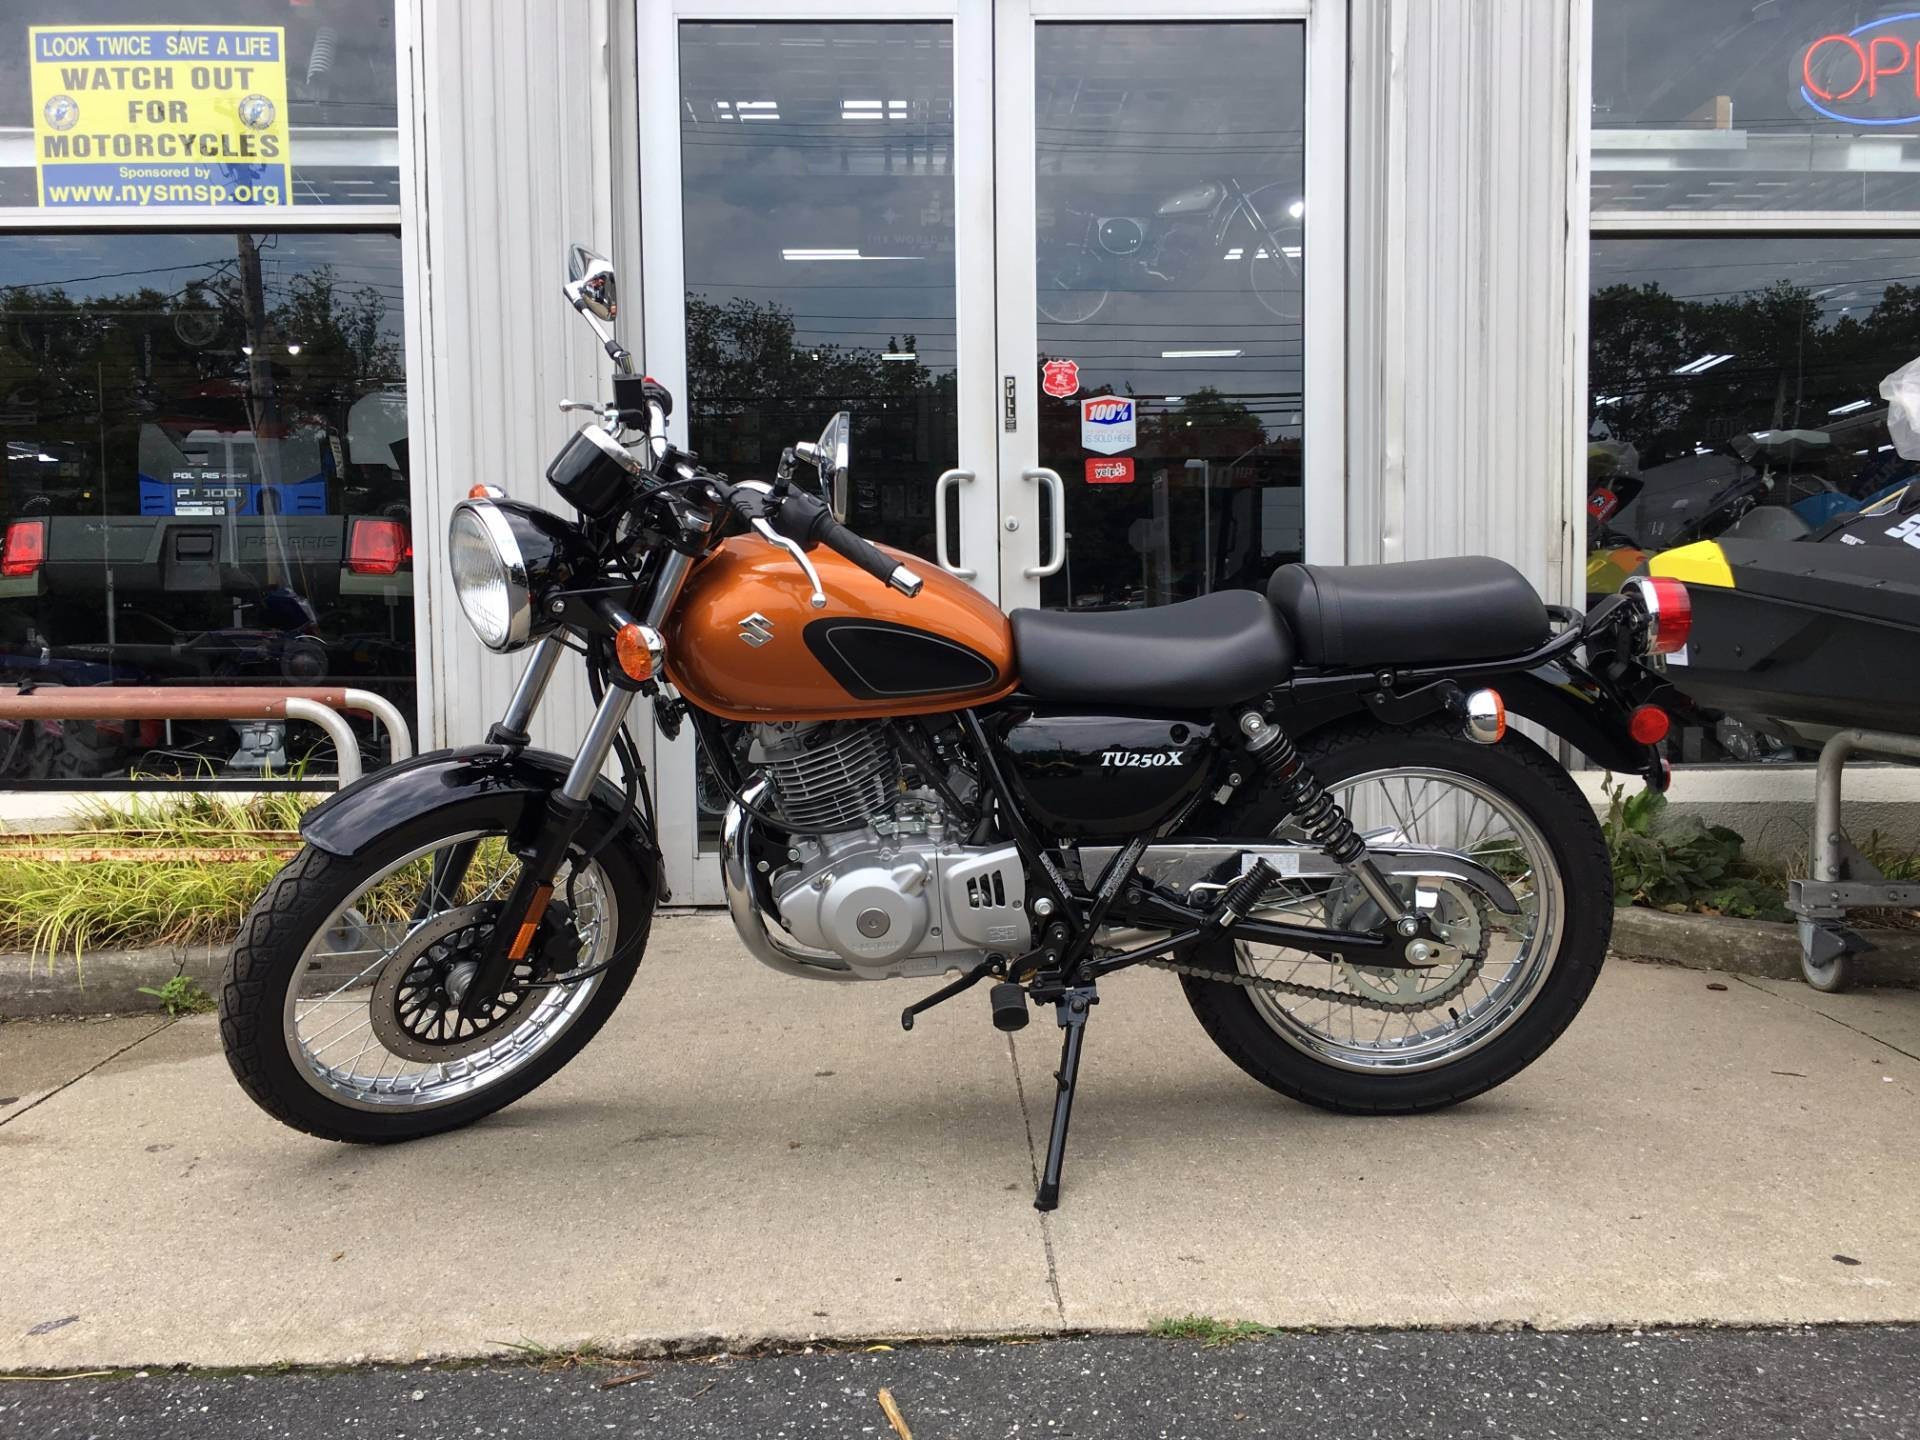 2016 Suzuki TU250X in Huntington Station, New York